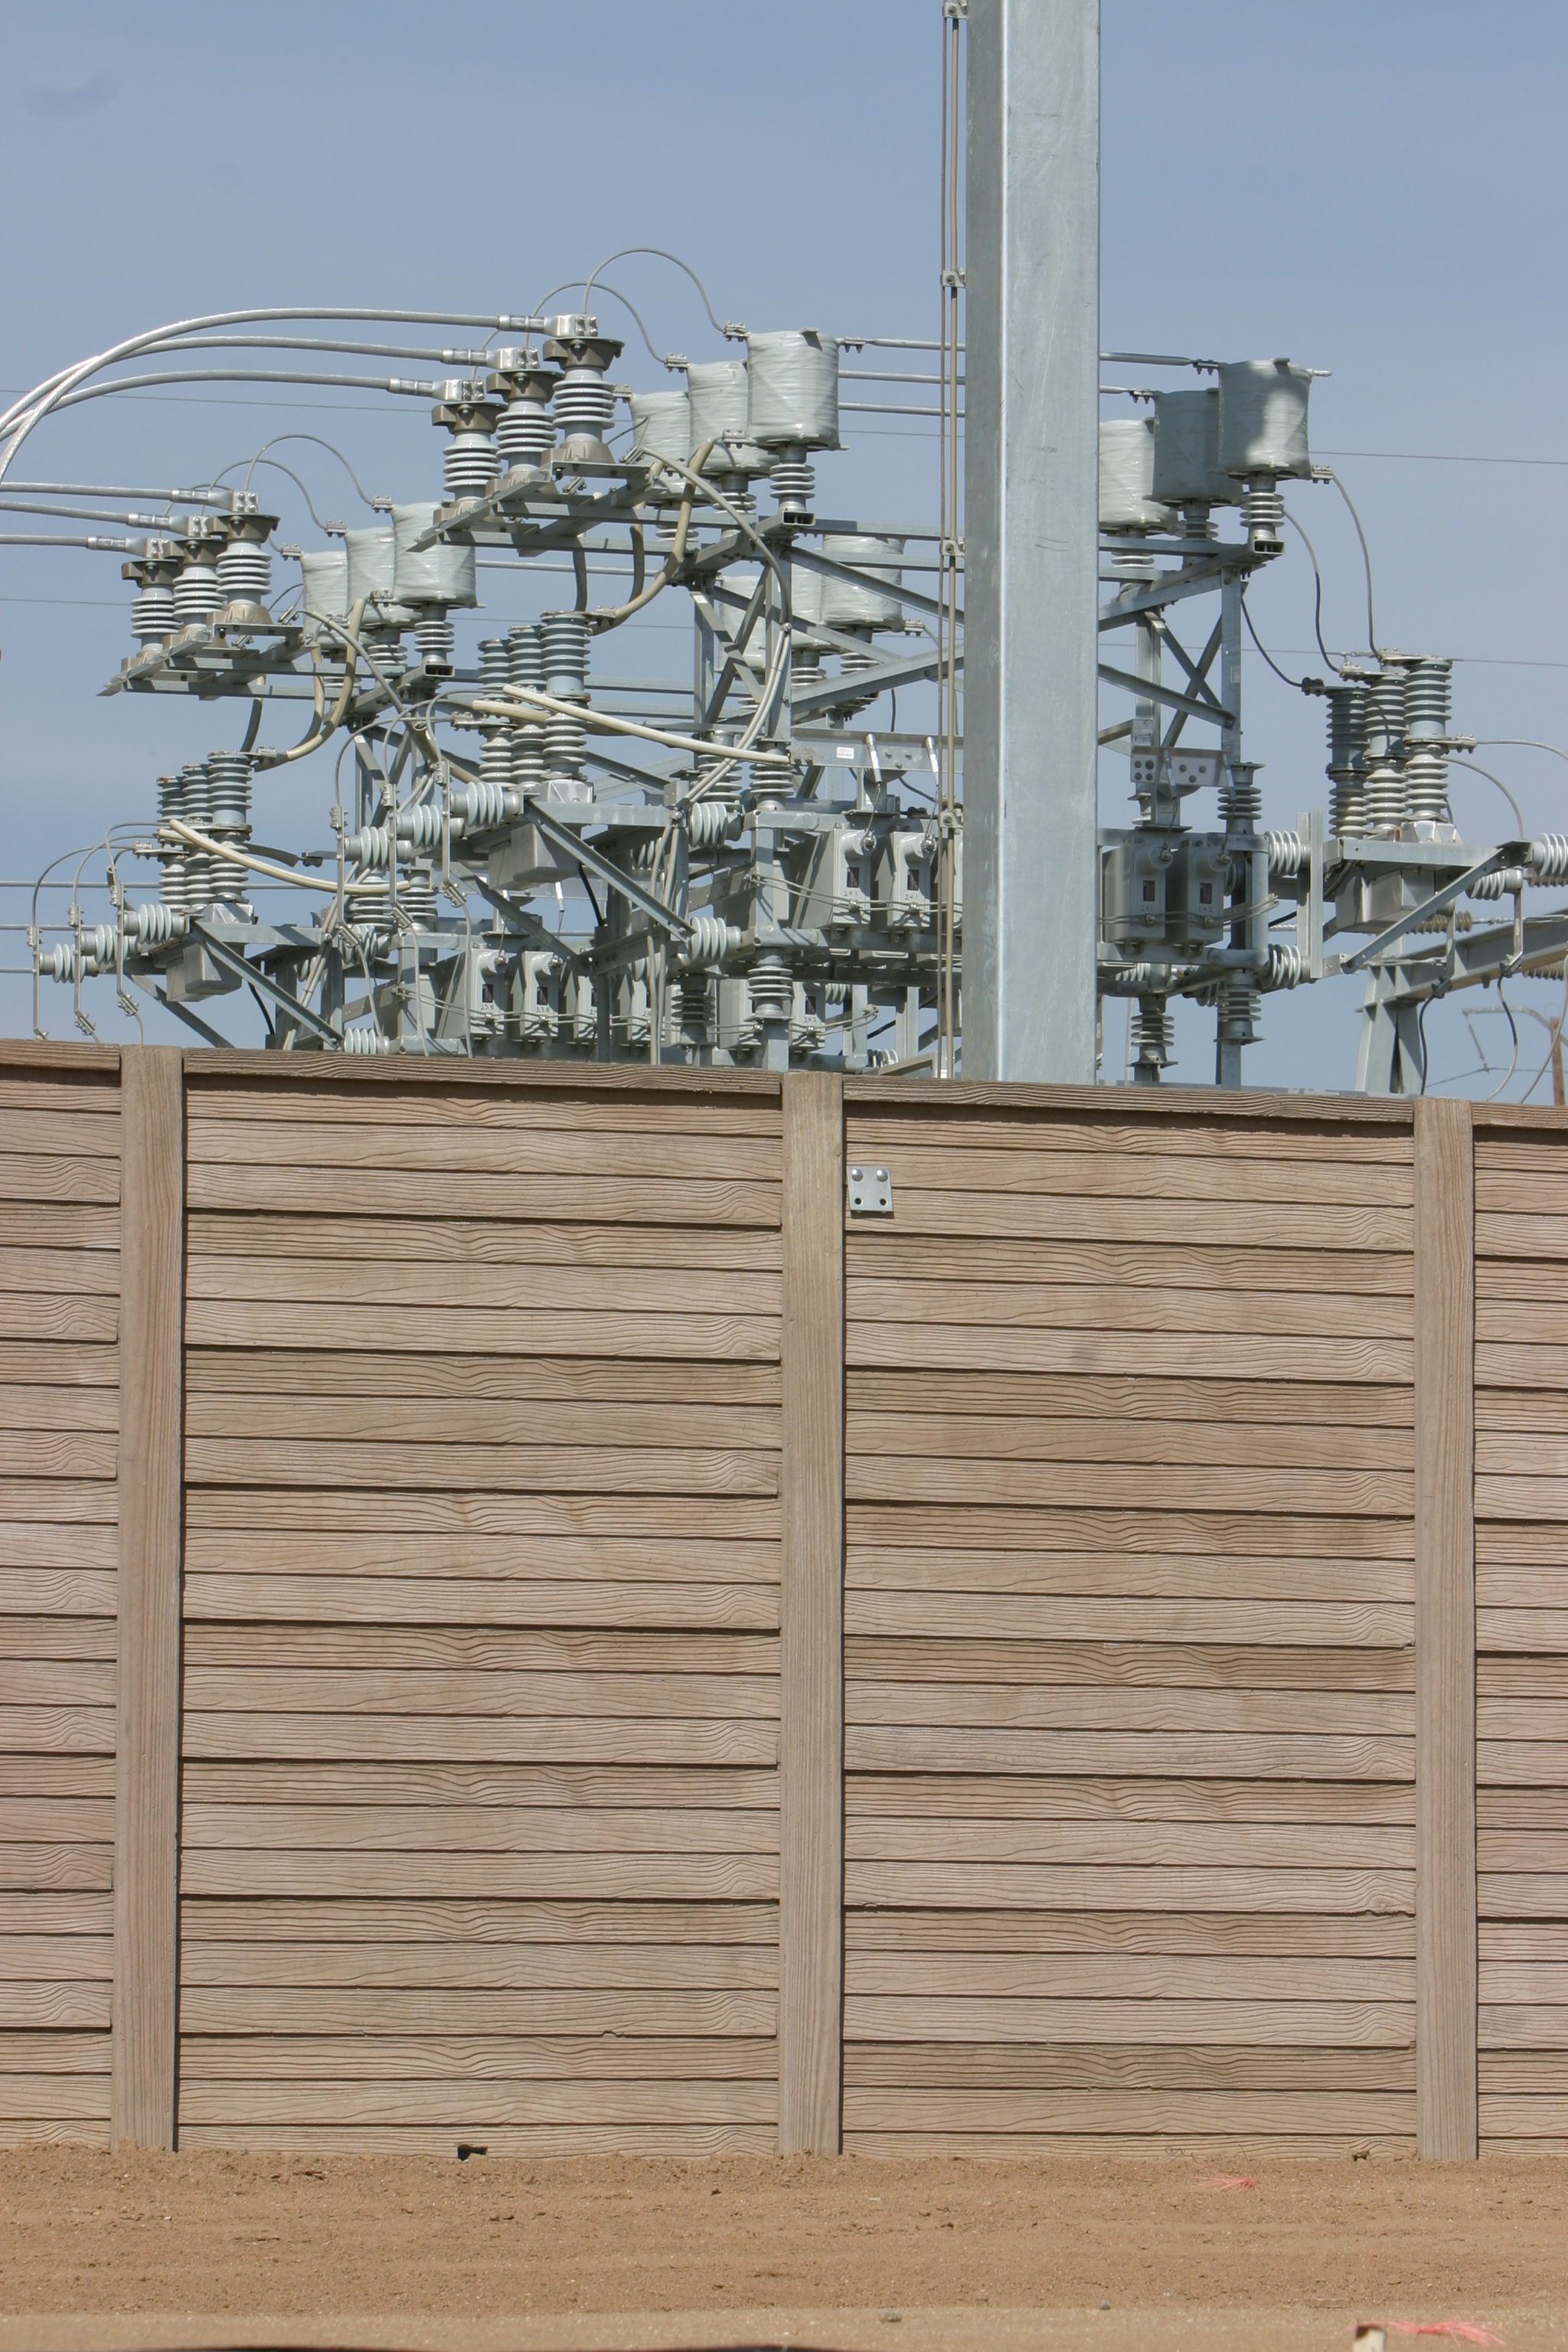 concrete fence at electrical substation